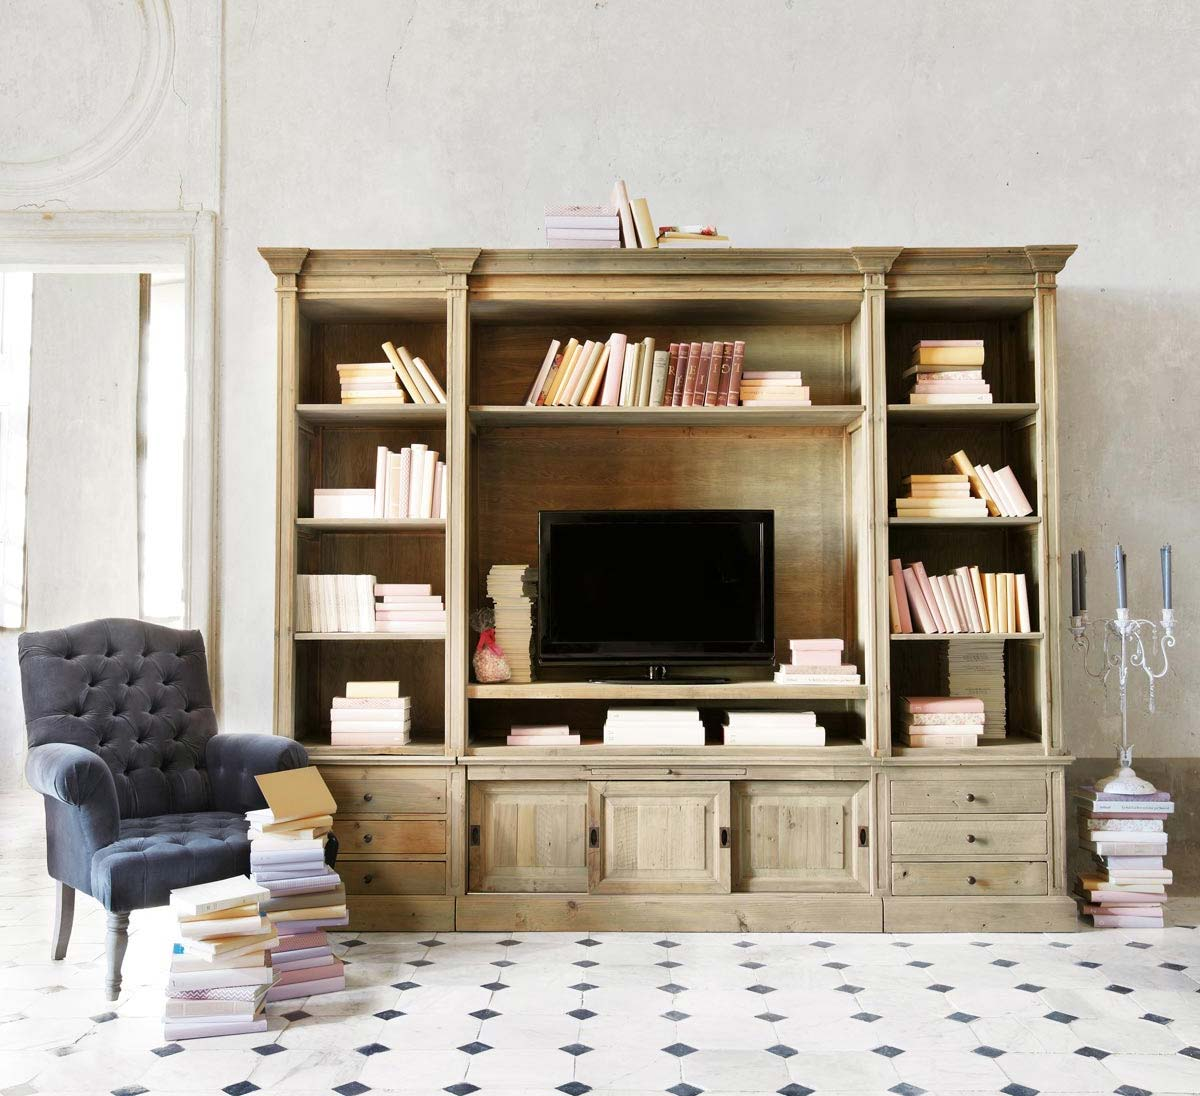 meuble tv bibliotheque en bois naturel. Black Bedroom Furniture Sets. Home Design Ideas